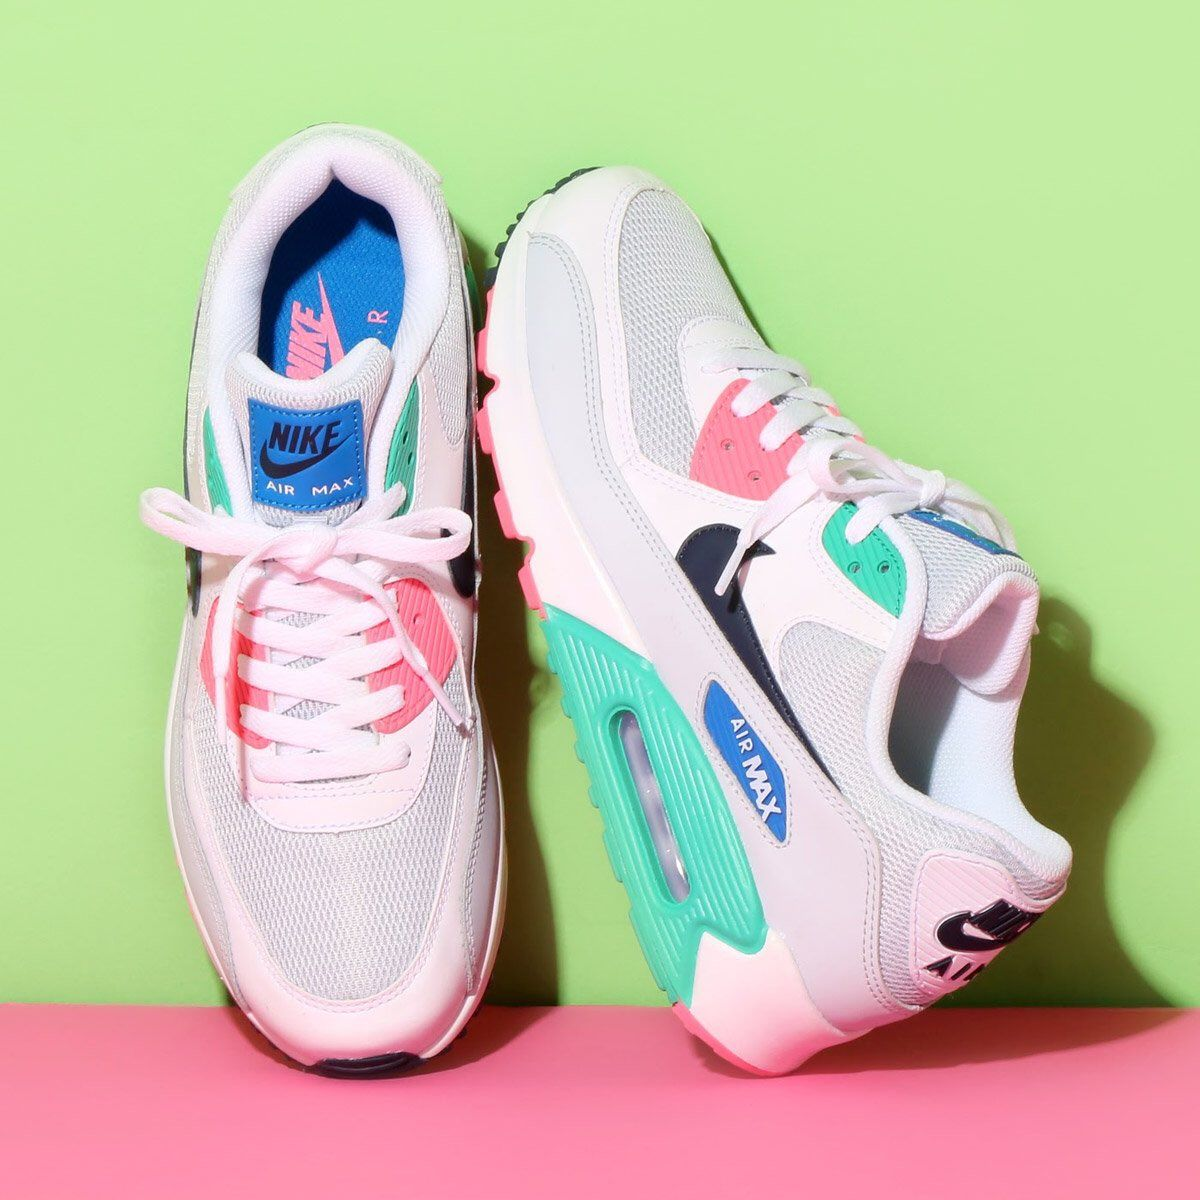 air max 90 essential summer sea nz|Free delivery!